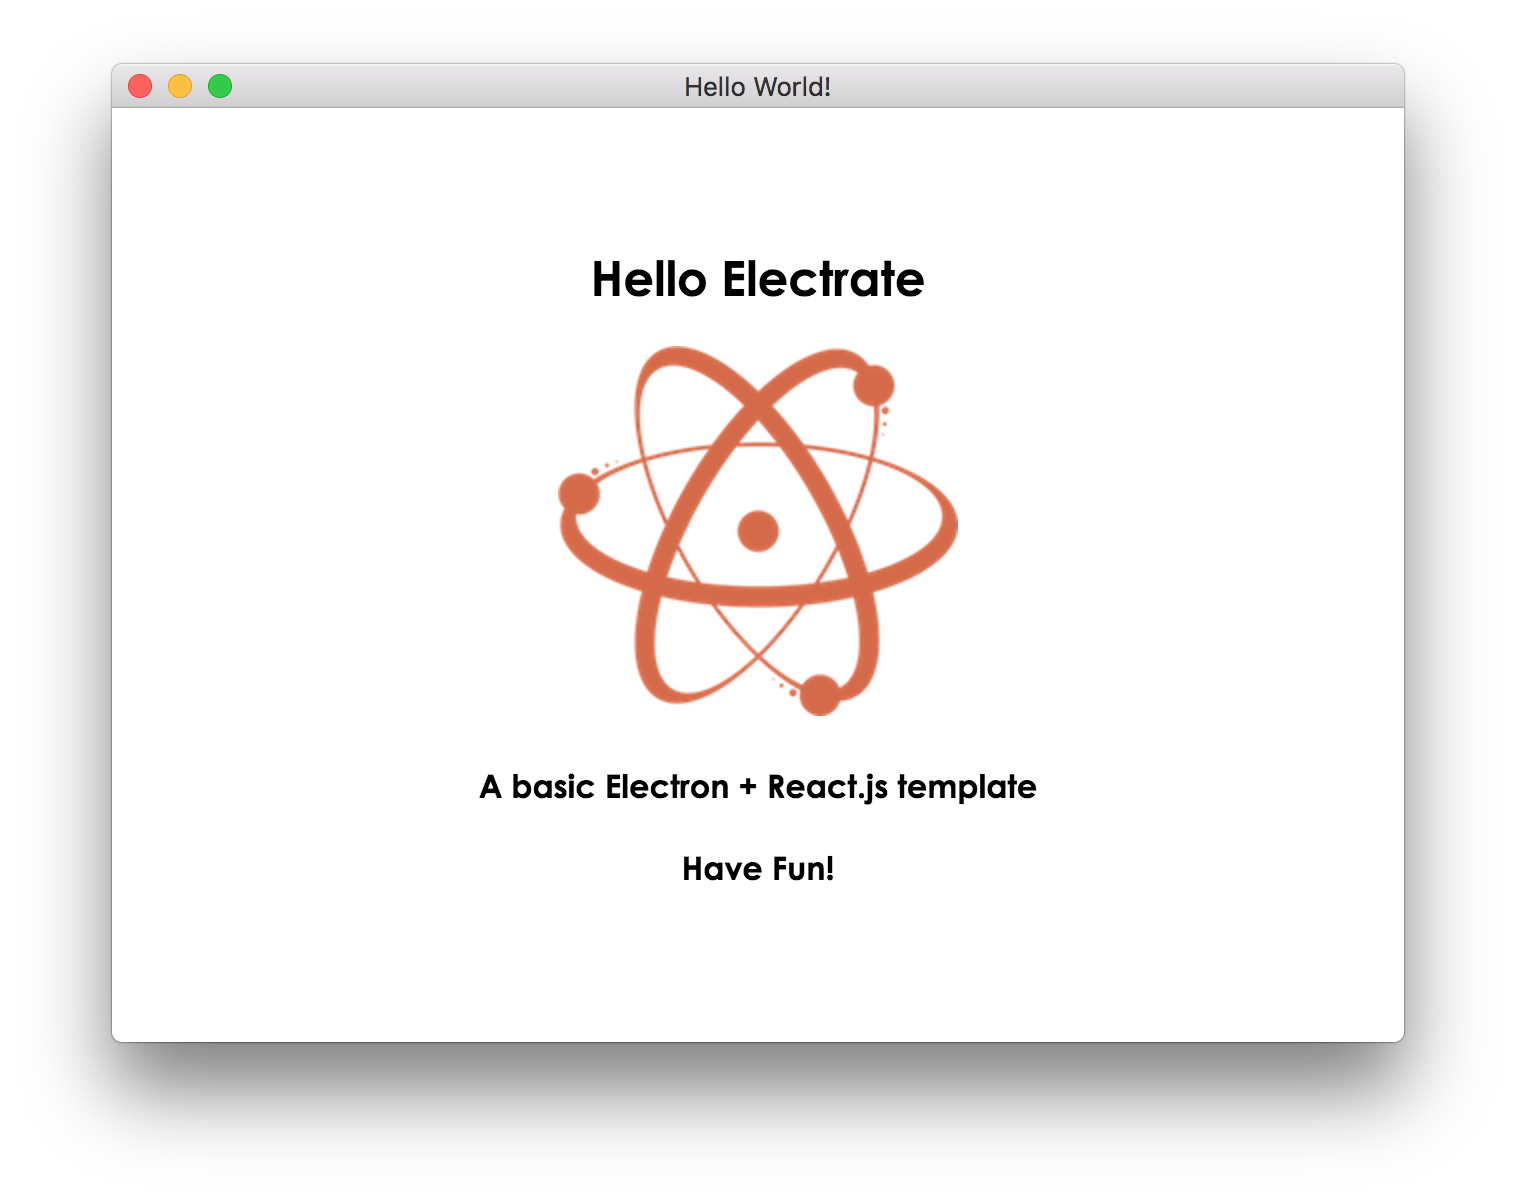 Creating an Electron + React js Template that Works!